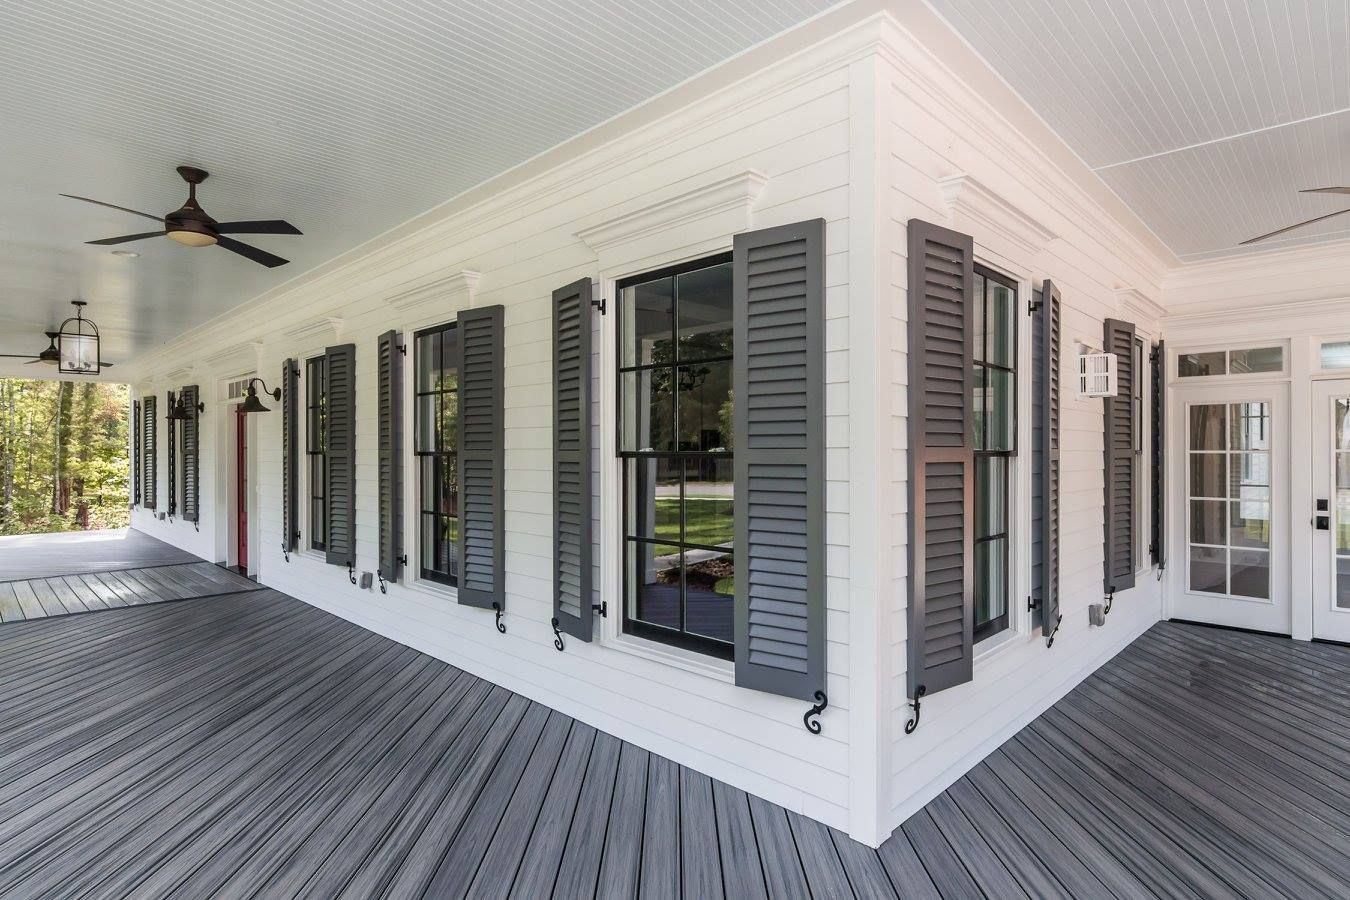 Exterior colors forever home house with porch white - Exterior paint that lasts forever ...